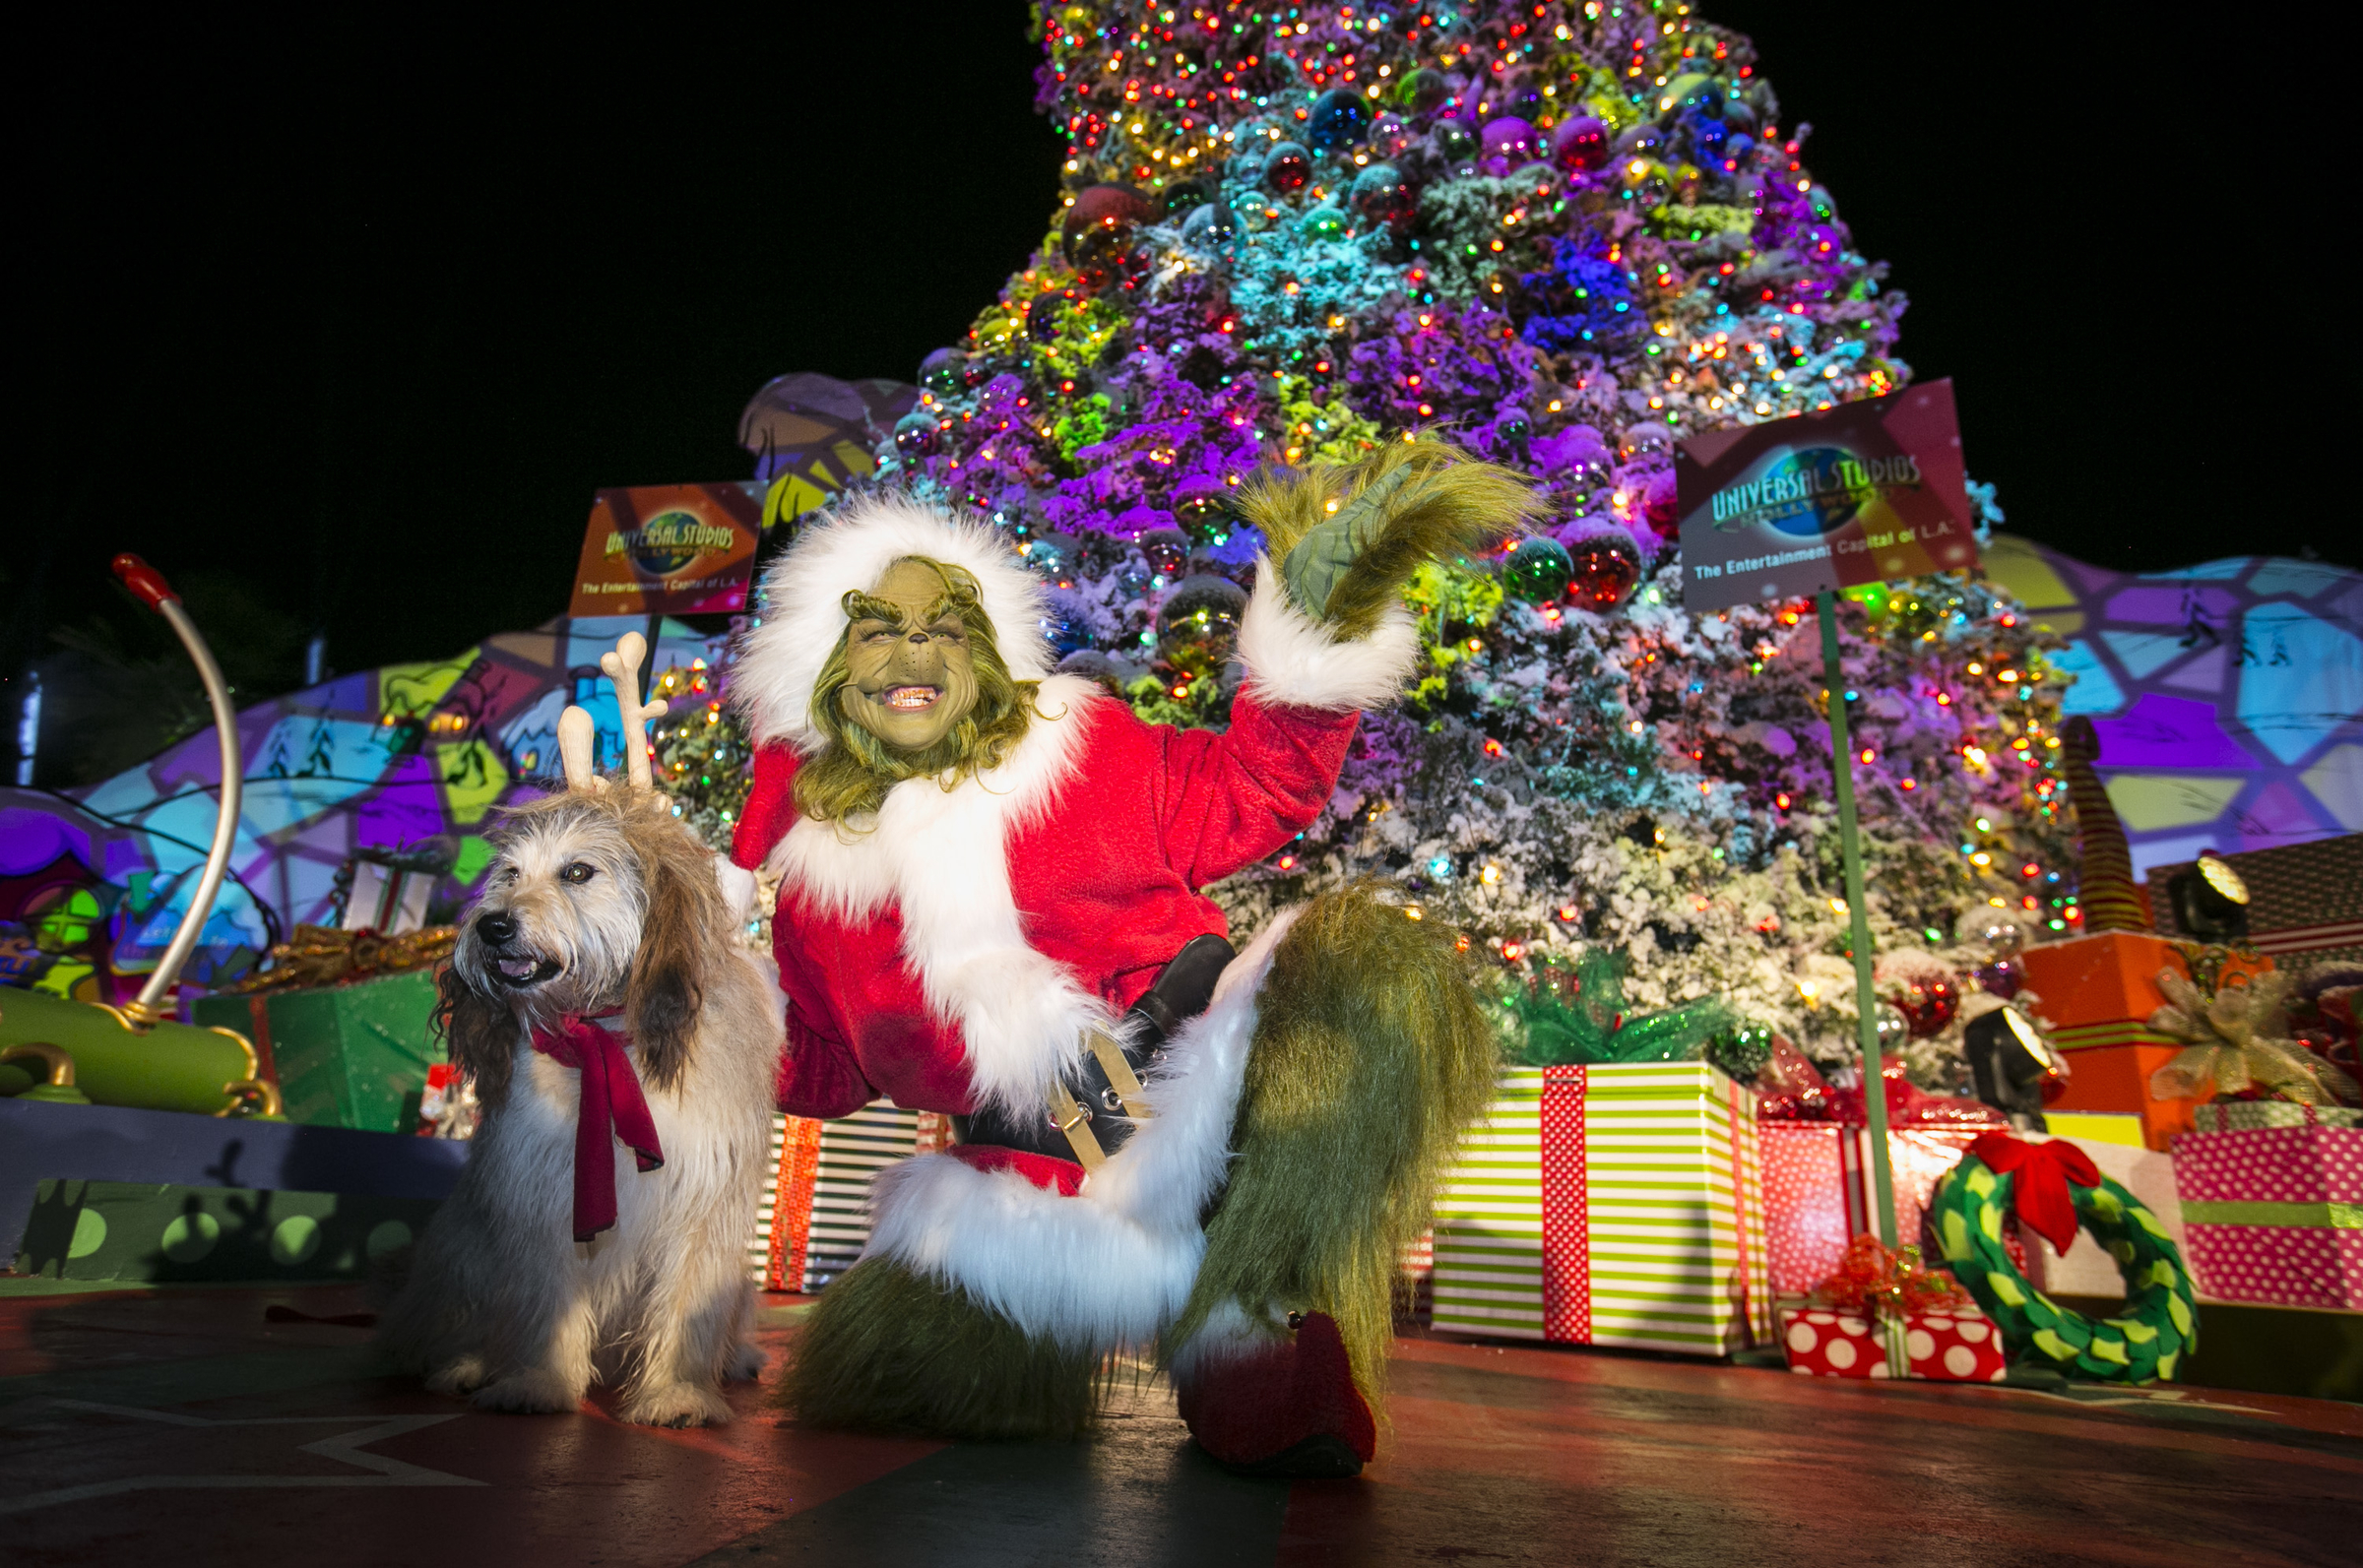 Grinchmas At Universal Studios Is A Wholiday Treat The